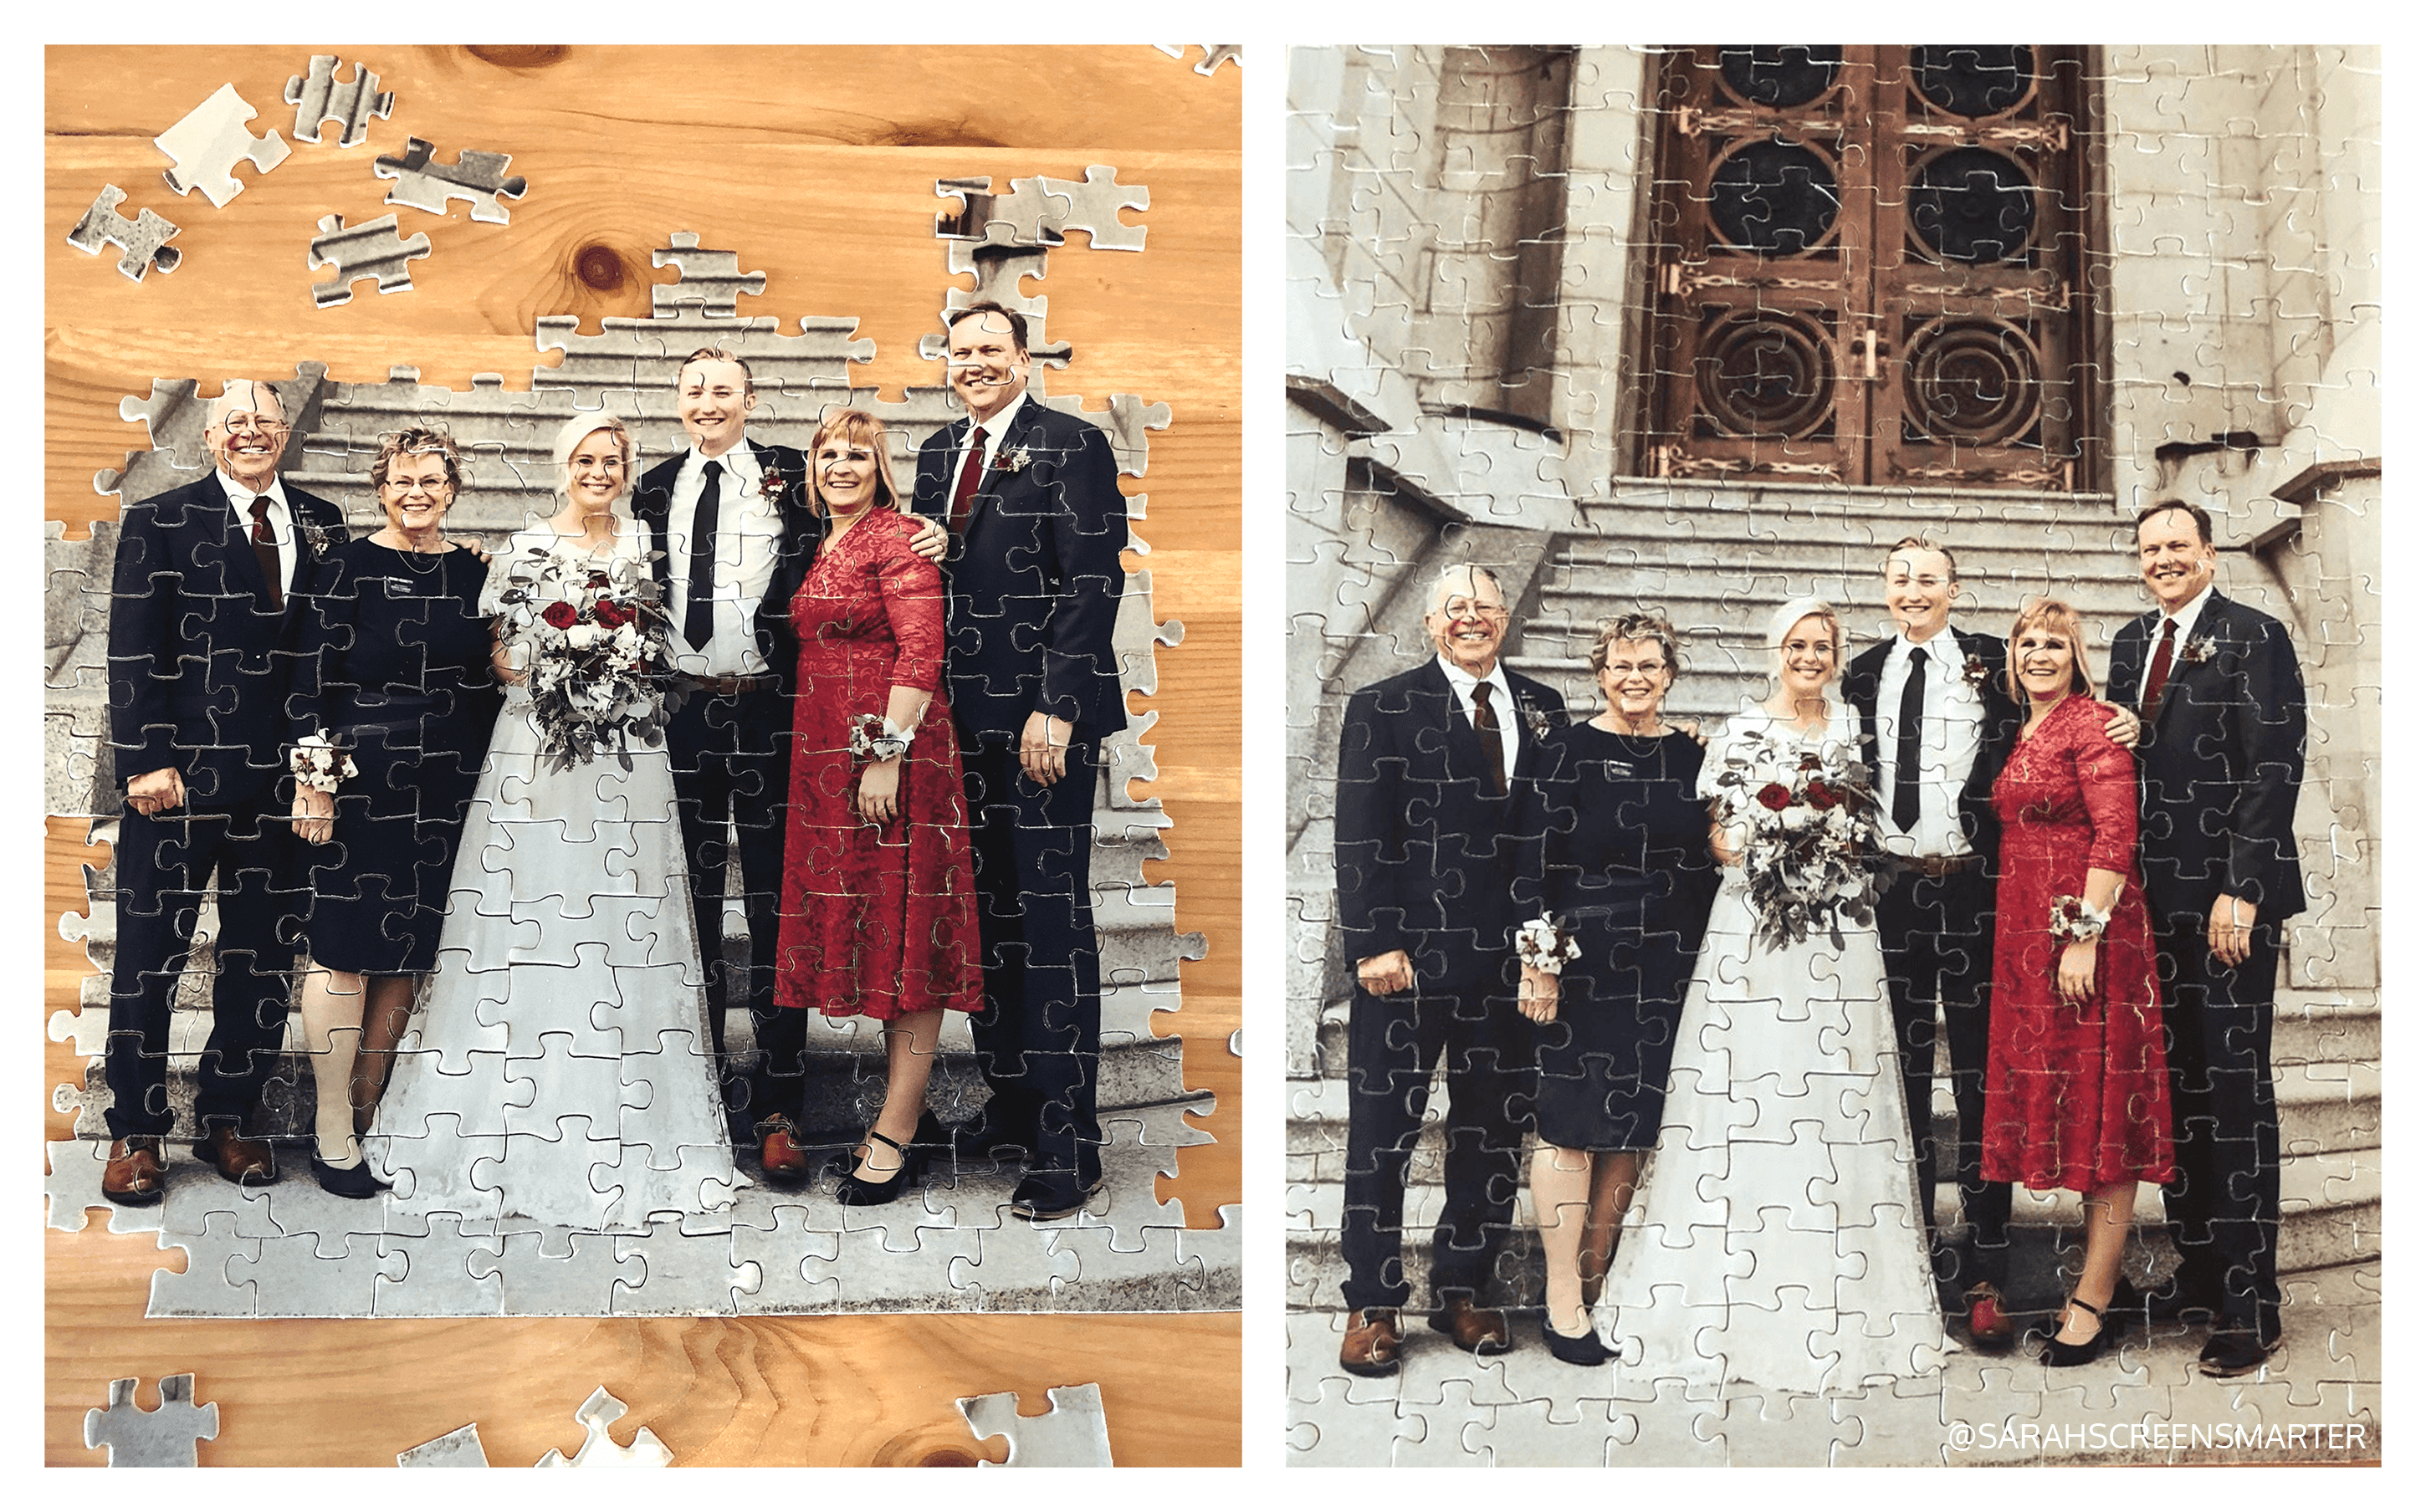 Anniversary or Wedding Photo Puzzles